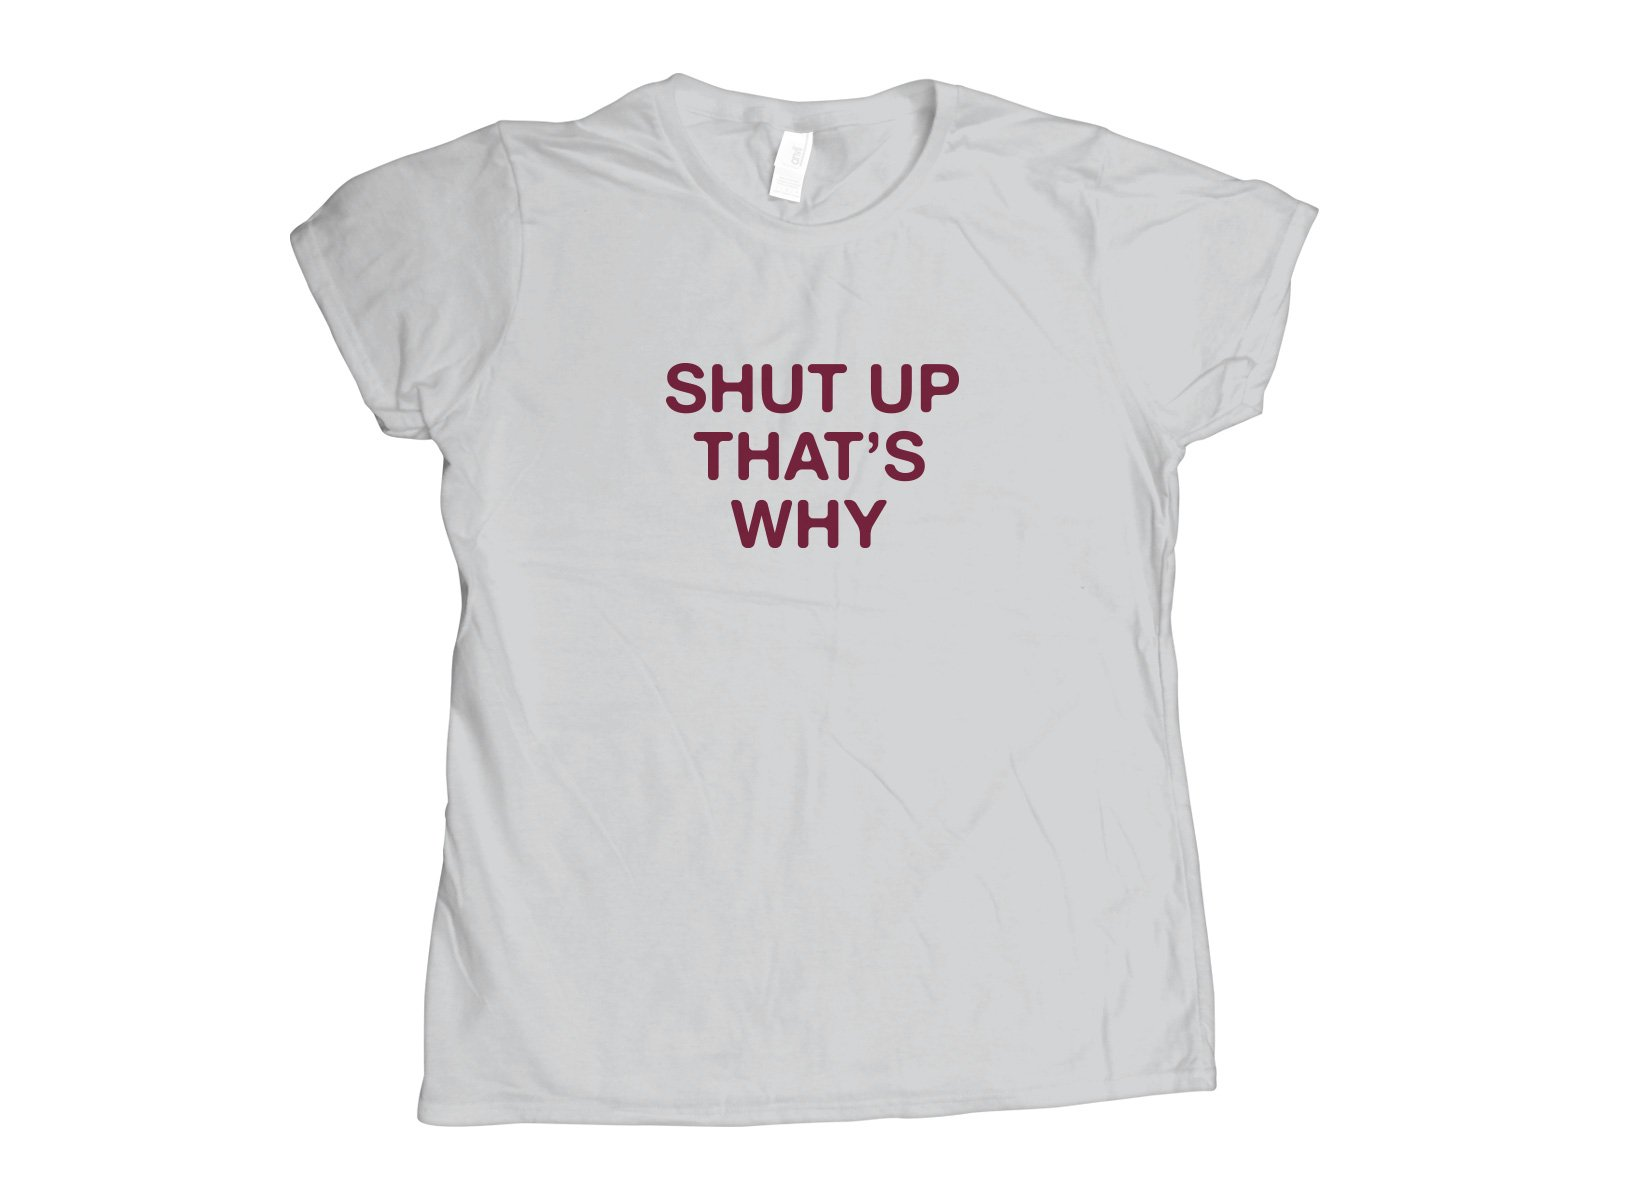 Shut Up That's Why on Womens T-Shirt